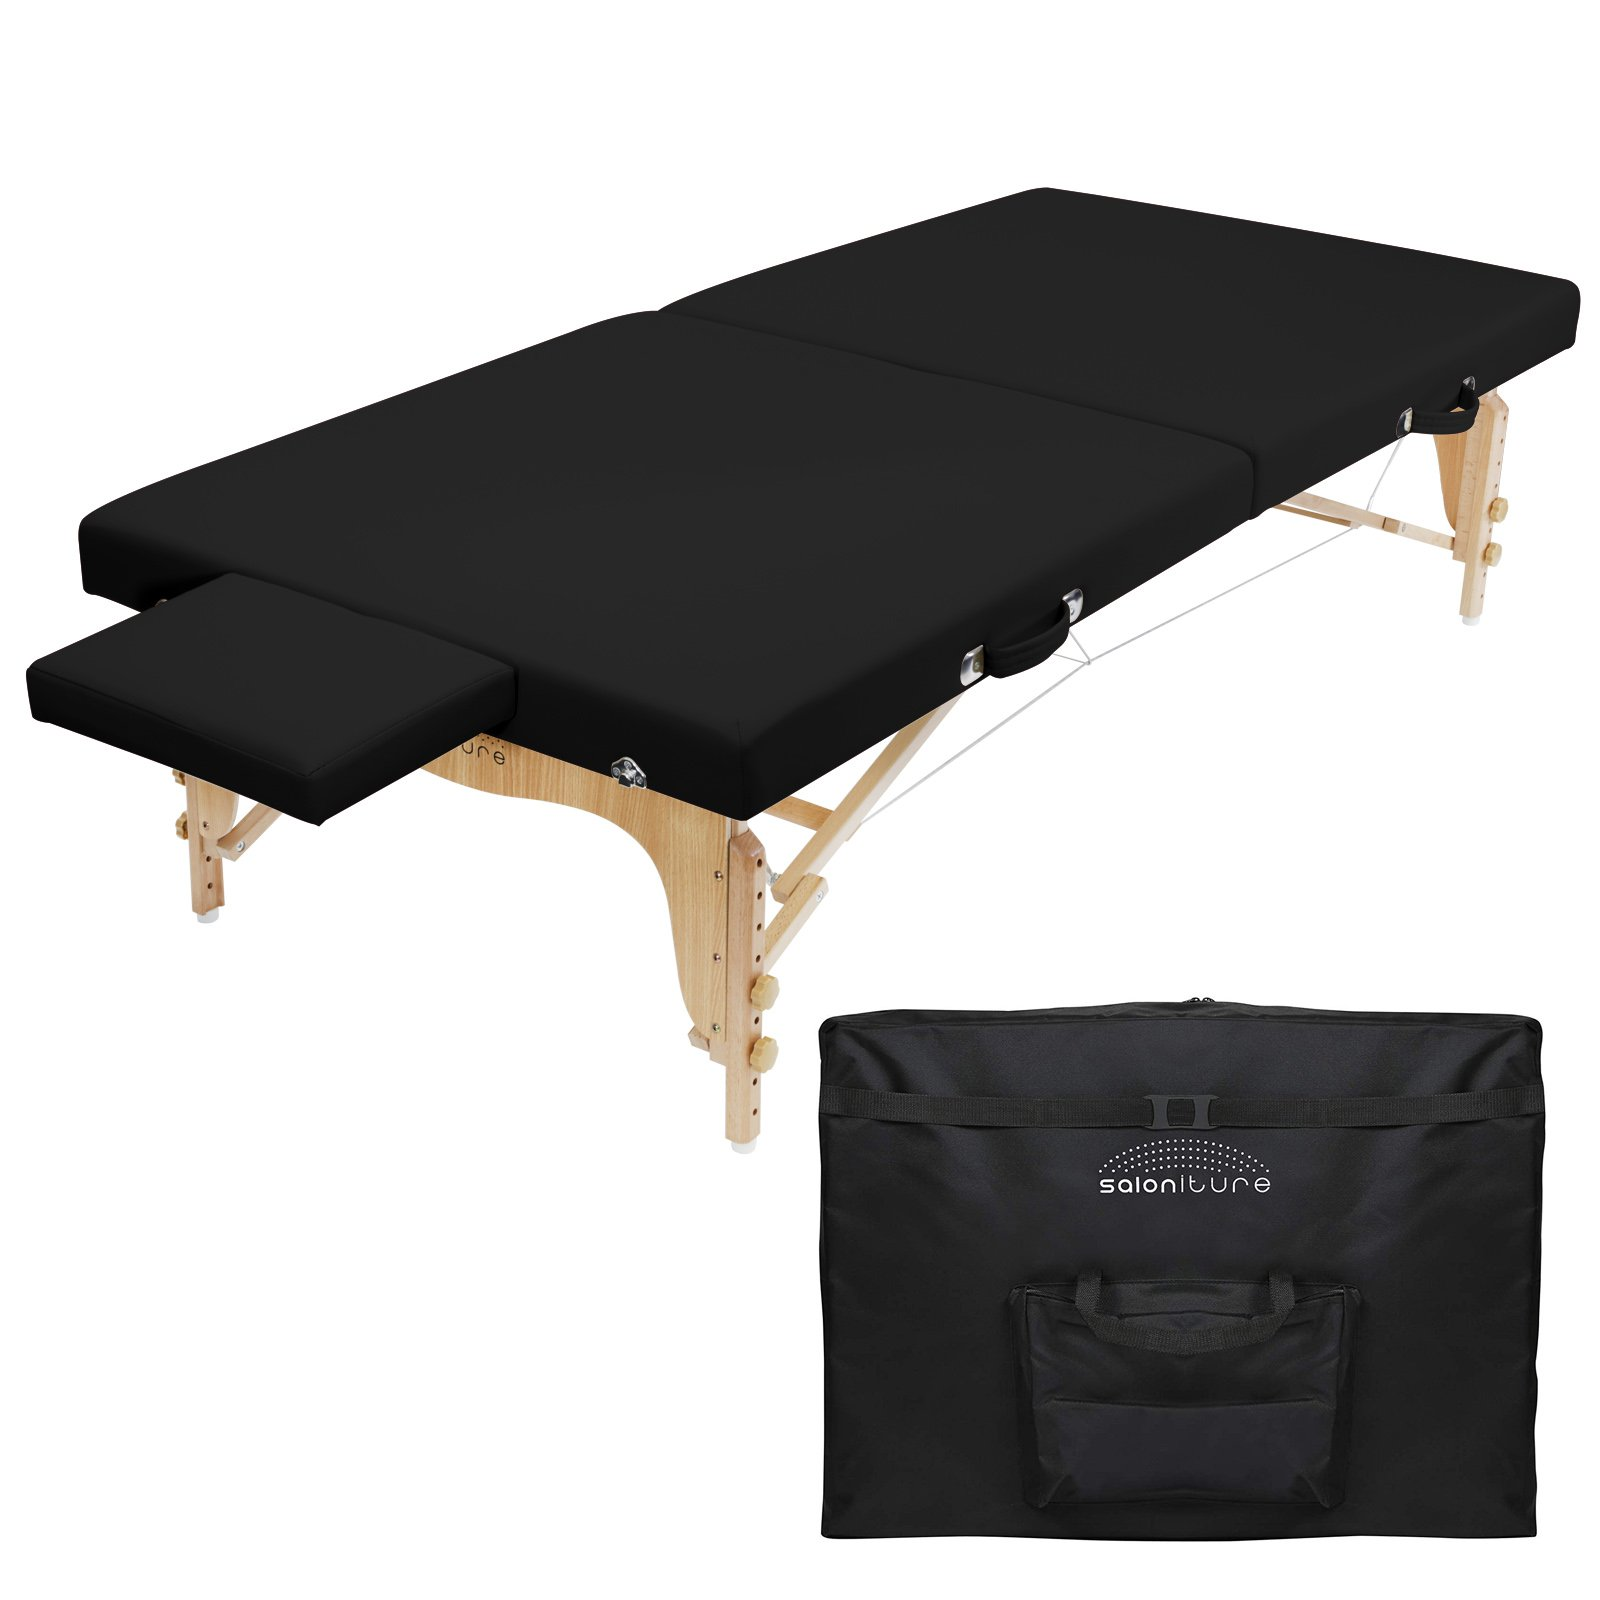 Saloniture Portable Physical Therapy Massage Table - Low to Ground Stretching Treatment Mat Platform - Black by Saloniture